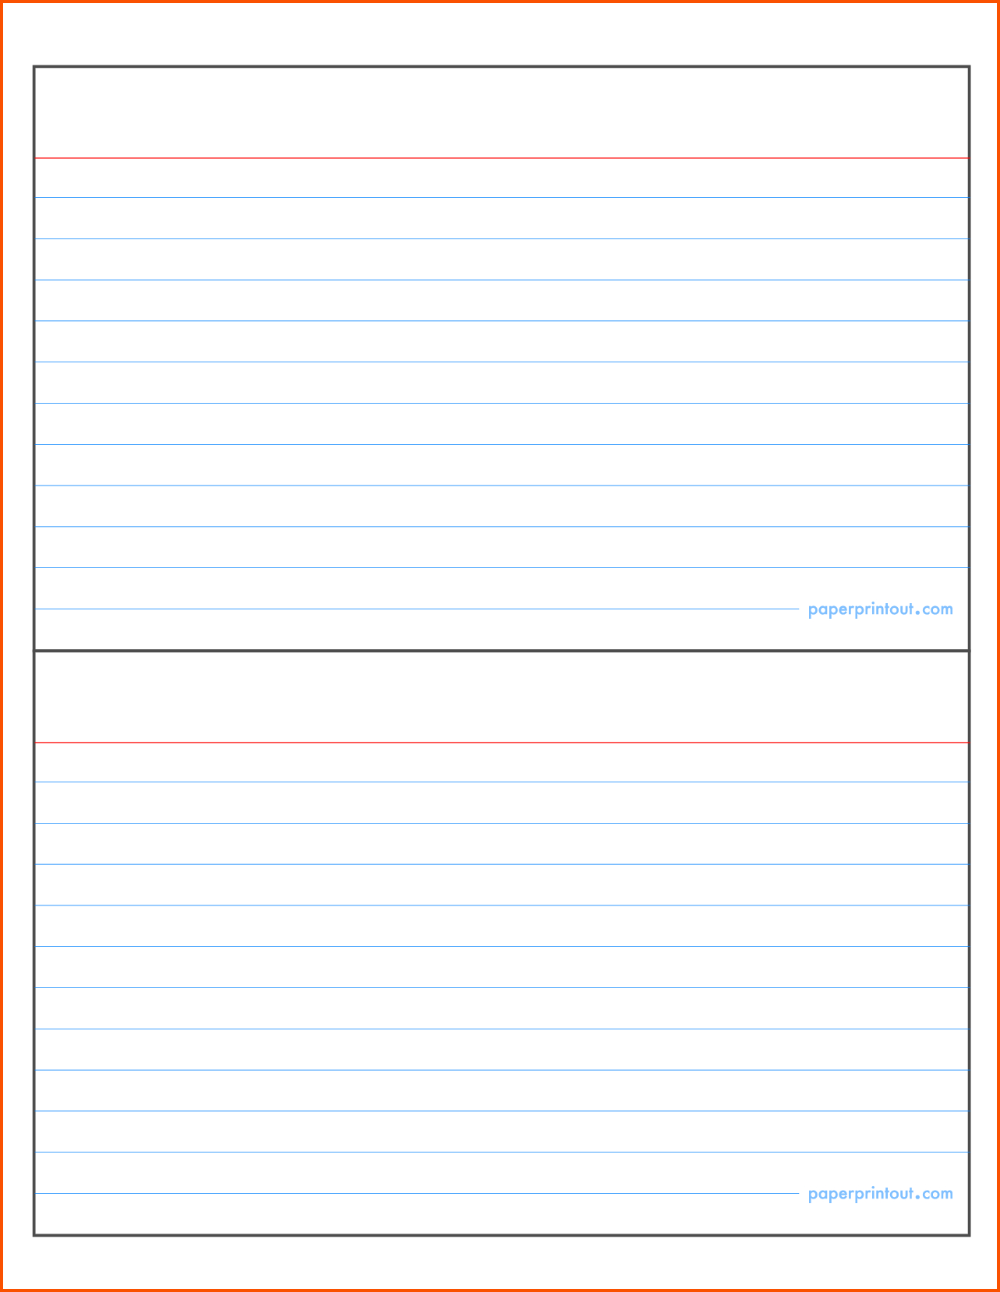 Images Of Ms Word X Index Card Template Zeept Throughout Index Card Template For Word 10 Profes Recipe Cards Template Flash Card Template Note Card Template